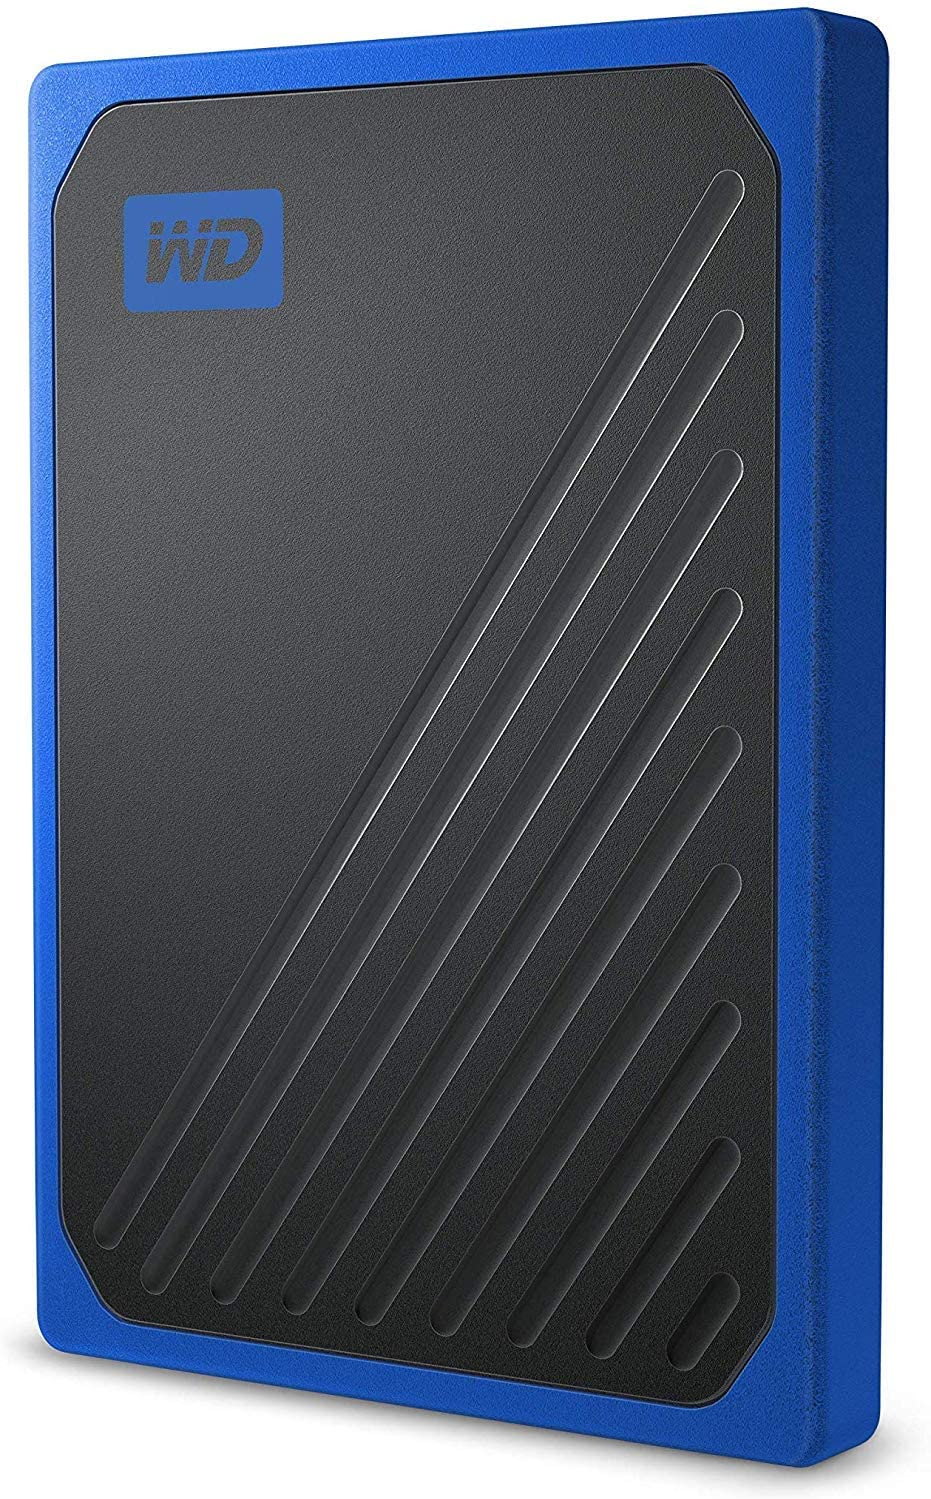 WD My Passport Go SSD amazon